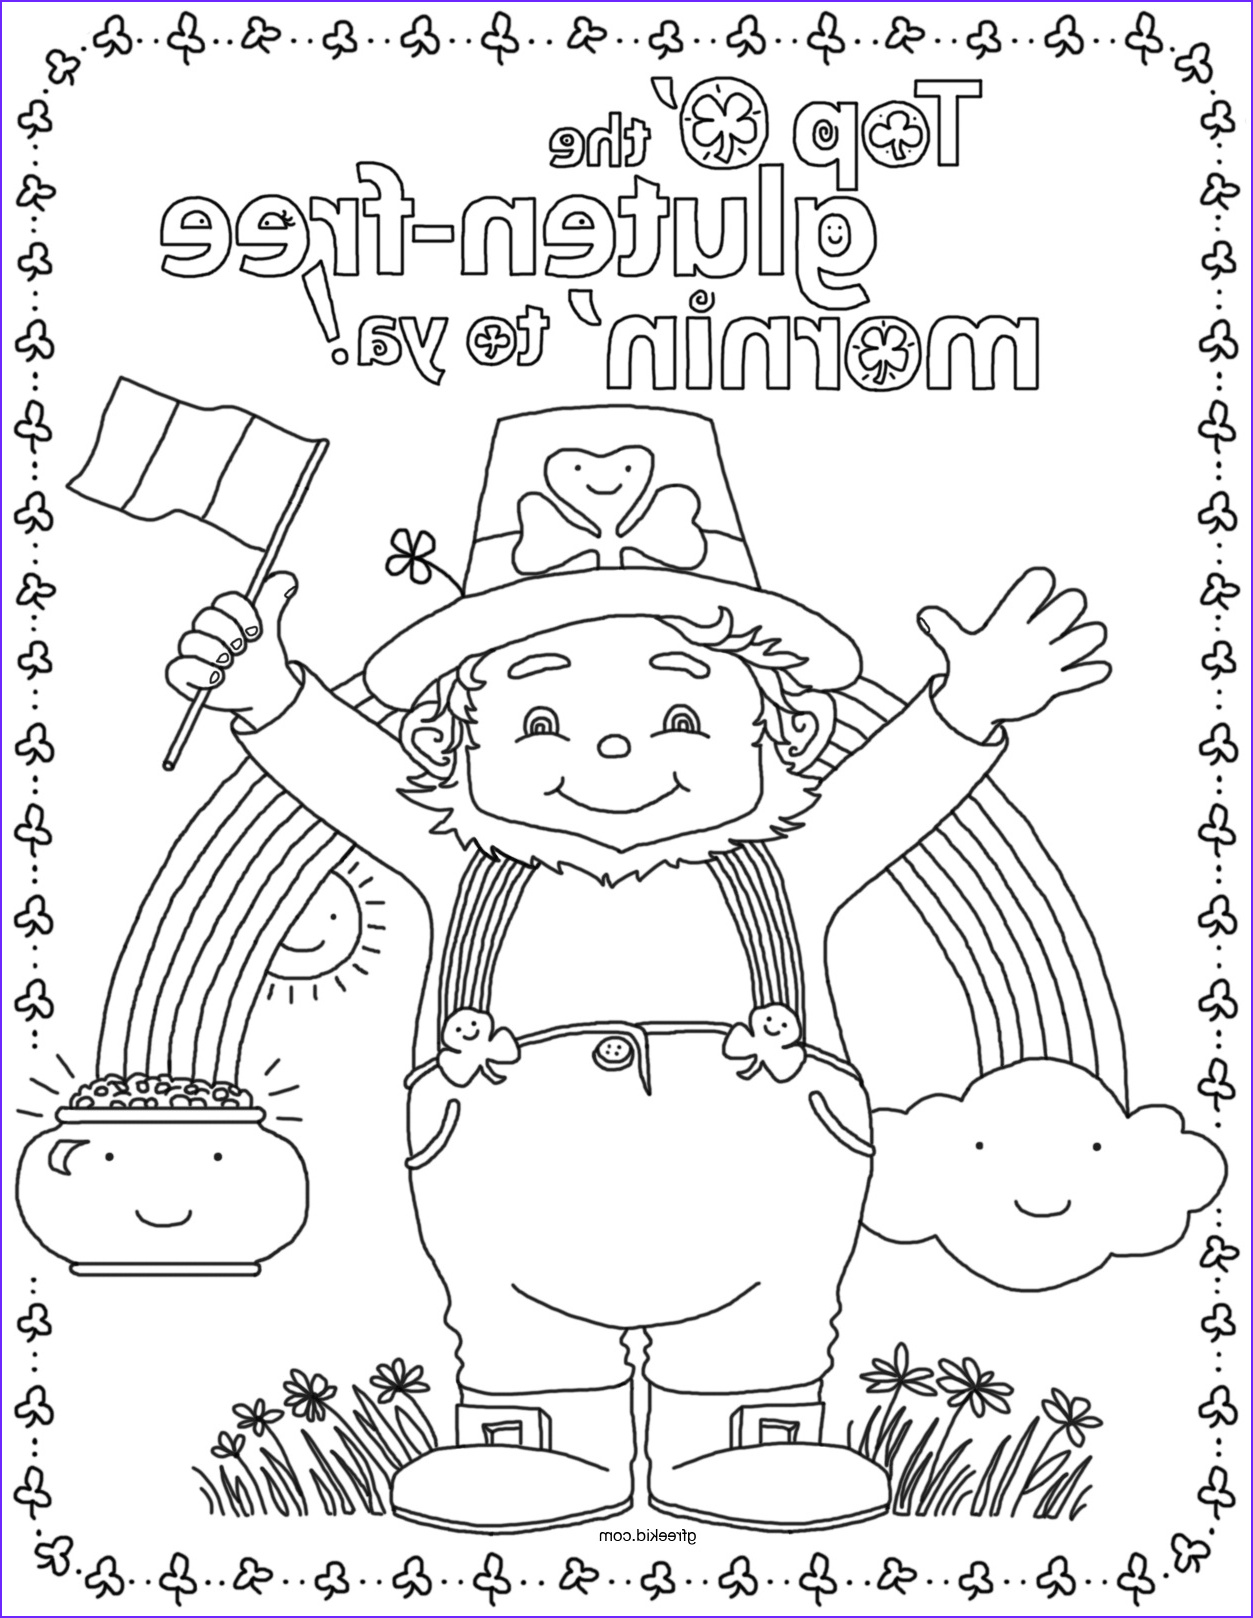 St Patrick Day Coloring Pages Inspirational Photos Simple St Patrick's Day Ideas and Coloring Page for